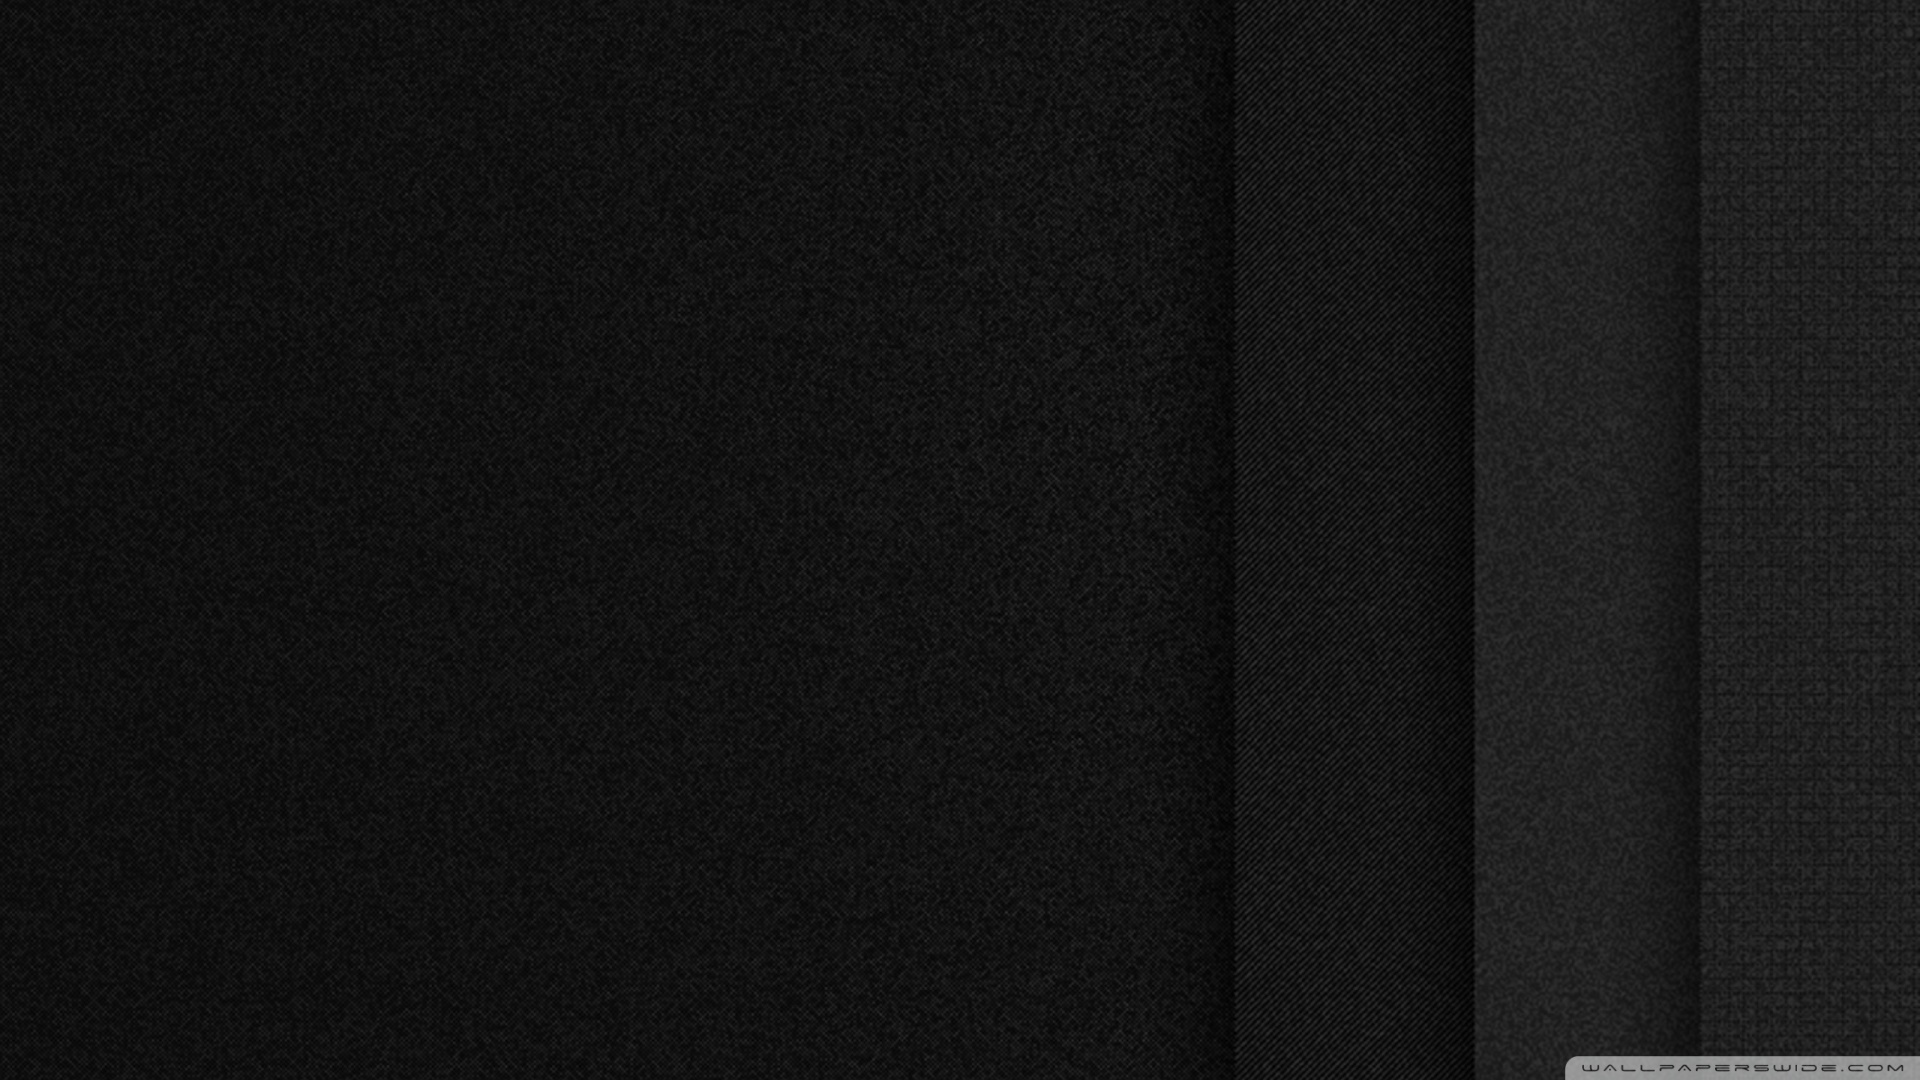 Black Fabric Texture Wallpaper 1920x1080 Black Fabric Texture 1920x1080